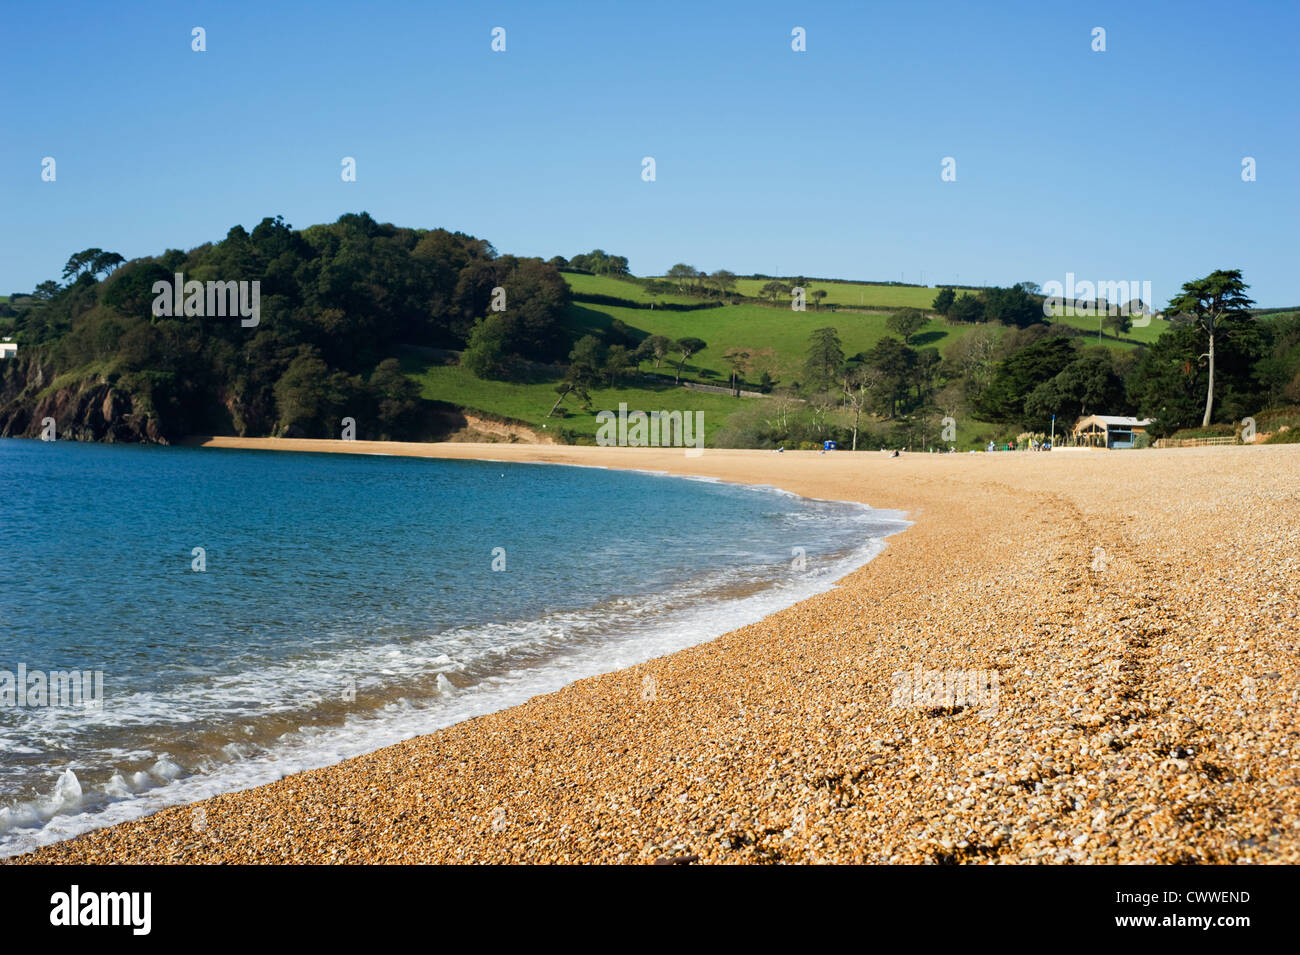 The beach at Blackpool Sands, Devon, UK - Stock Image